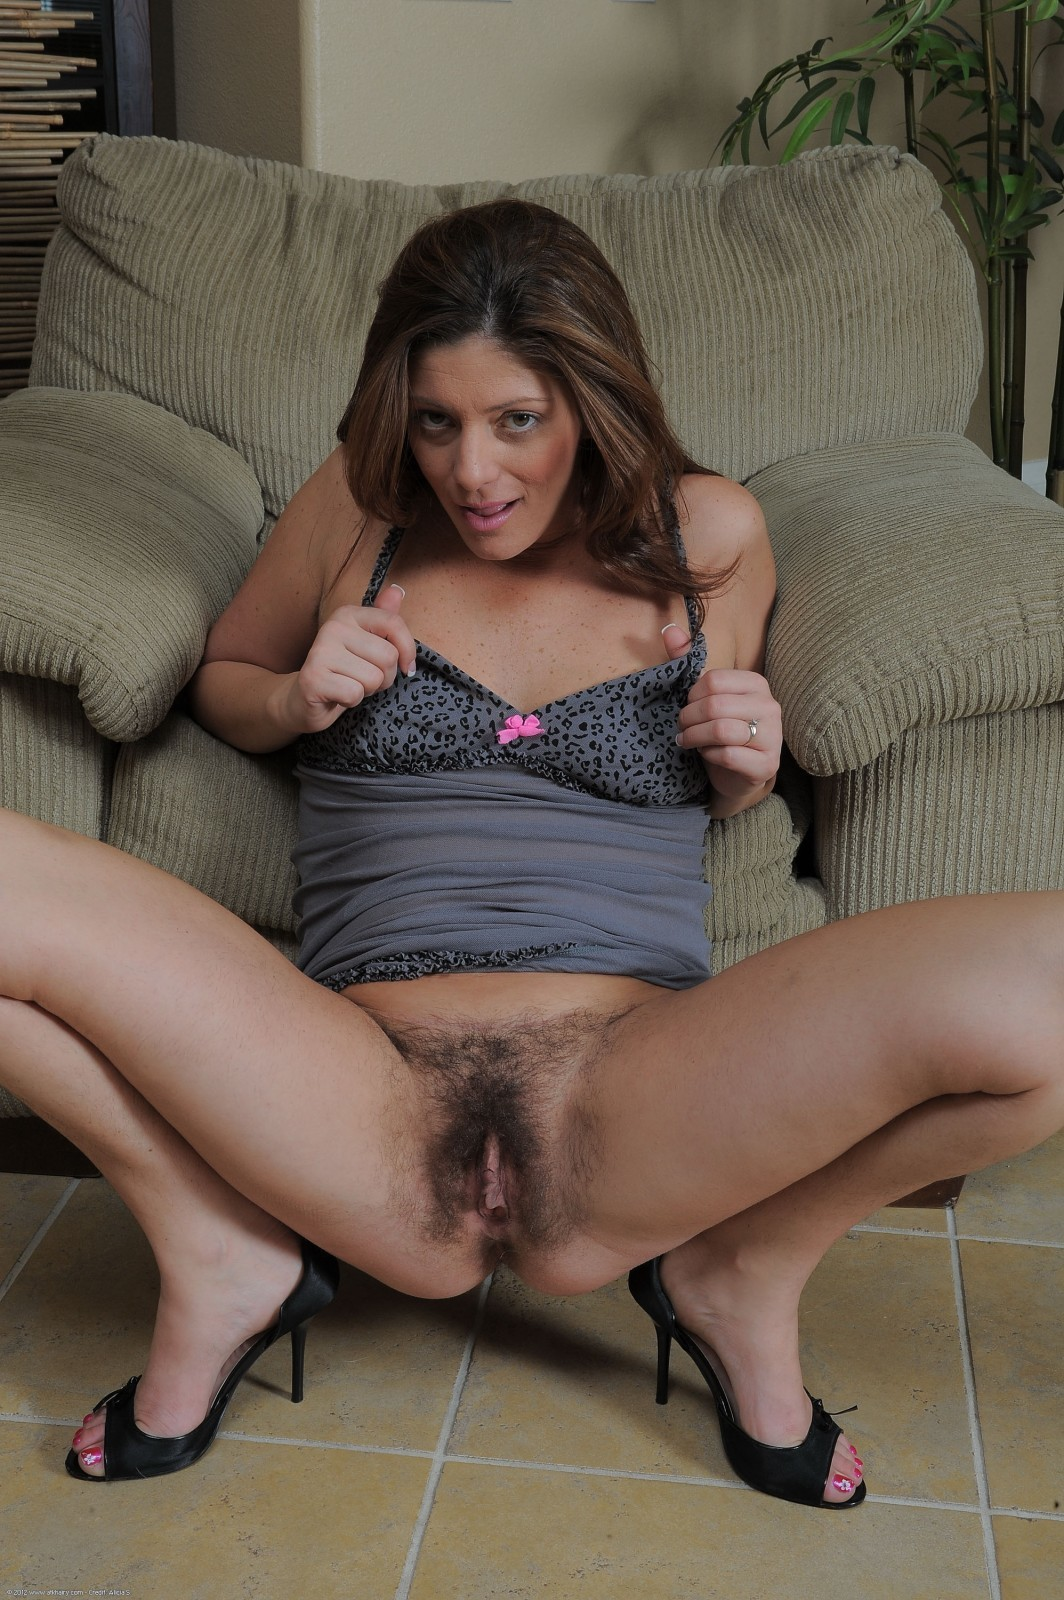 college girl gets naked on skype with boy friend mov Annparker, Beautiful, Brunette, Bush, Bush, Cougar, Cougar, Gorgeous, Hairy, Hairymilf, Hairypussy, Hairypussy, Hirsute, Hot, Iwanttogodownonherdirtylittlepussy, Iwanttoinseminateher, Liftingskirt, Mature, Milf, Mom, Mommy, Natural, Perfecttriangle, Pussy, Sexy, Subversiveseb, Subversiveshairybitches, Wife